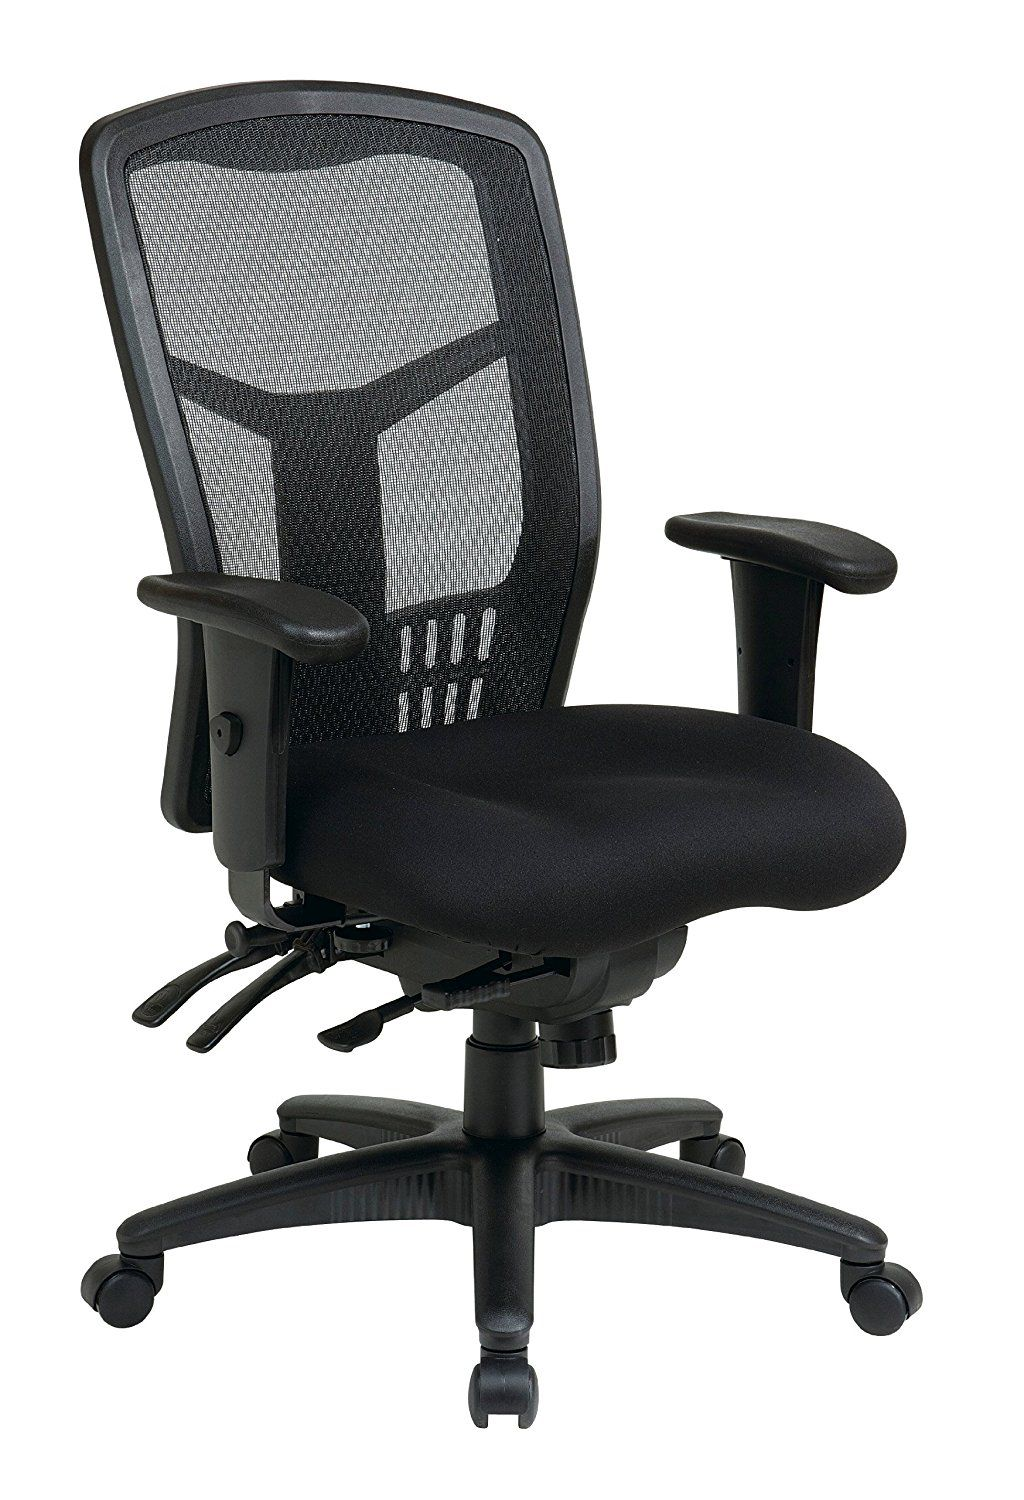 Comfortable Office Chairs The 7 Best Ergonomic Office Chairs Of 2019